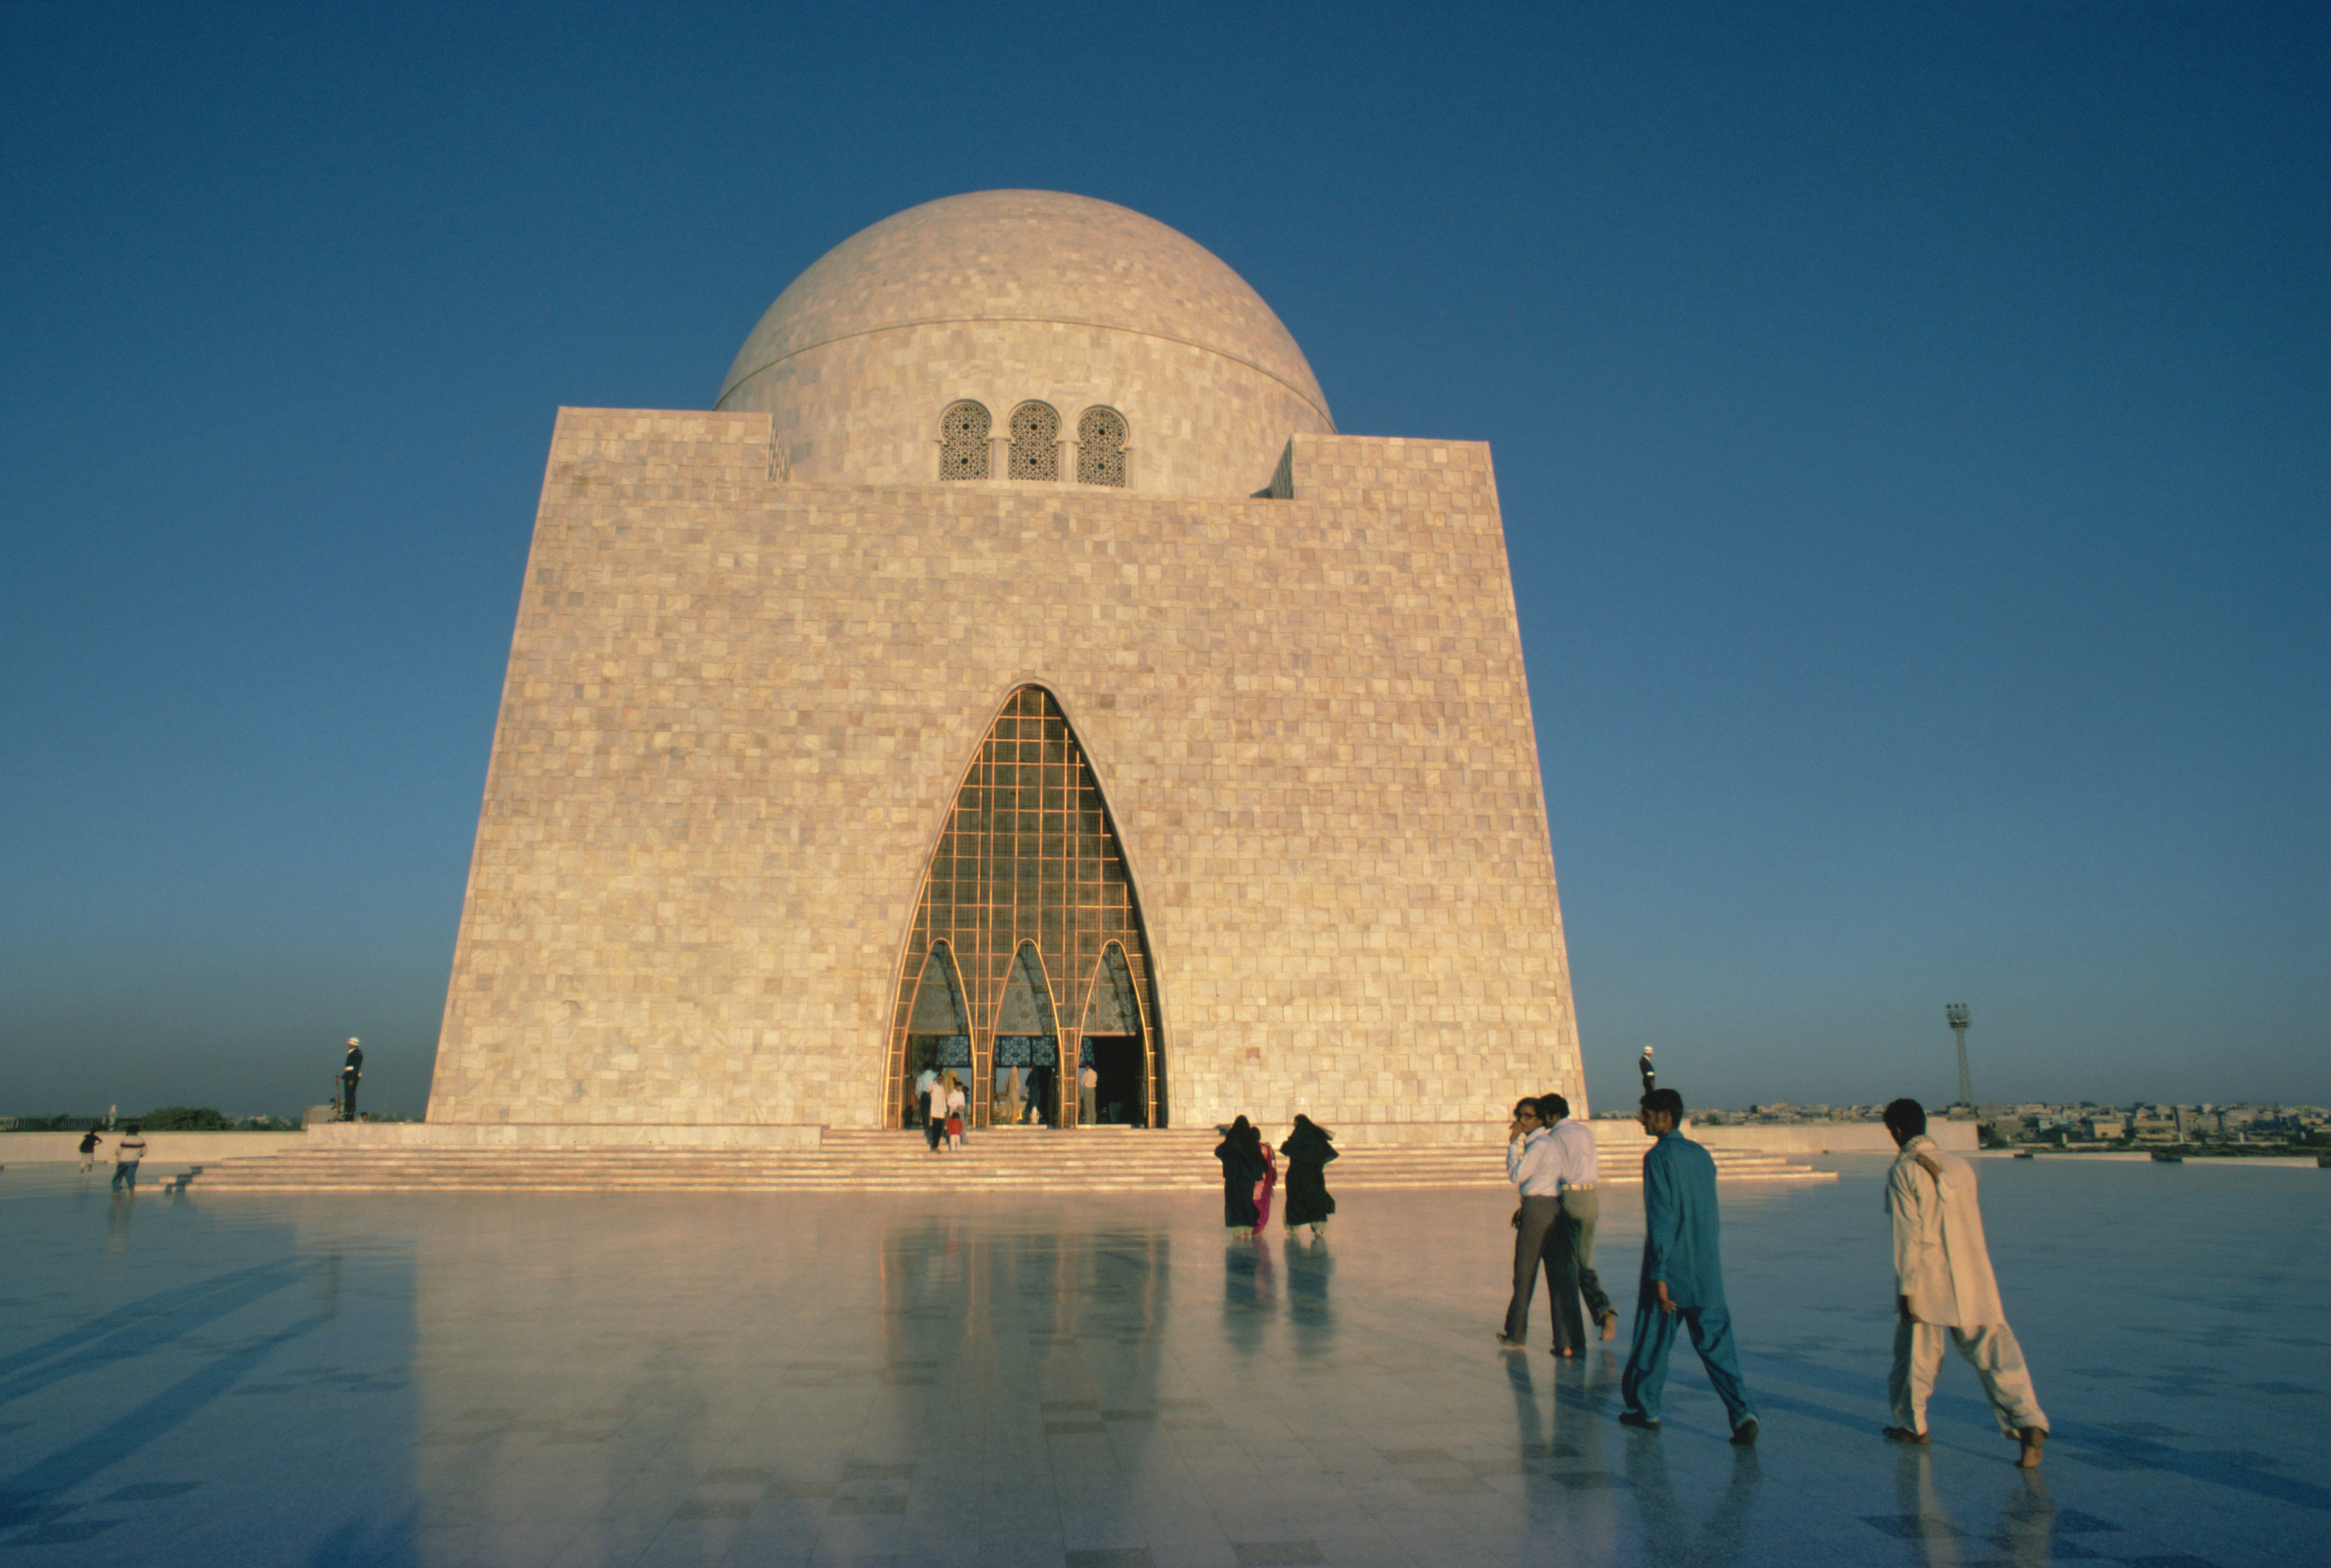 quaid-i-azam-mausoleum